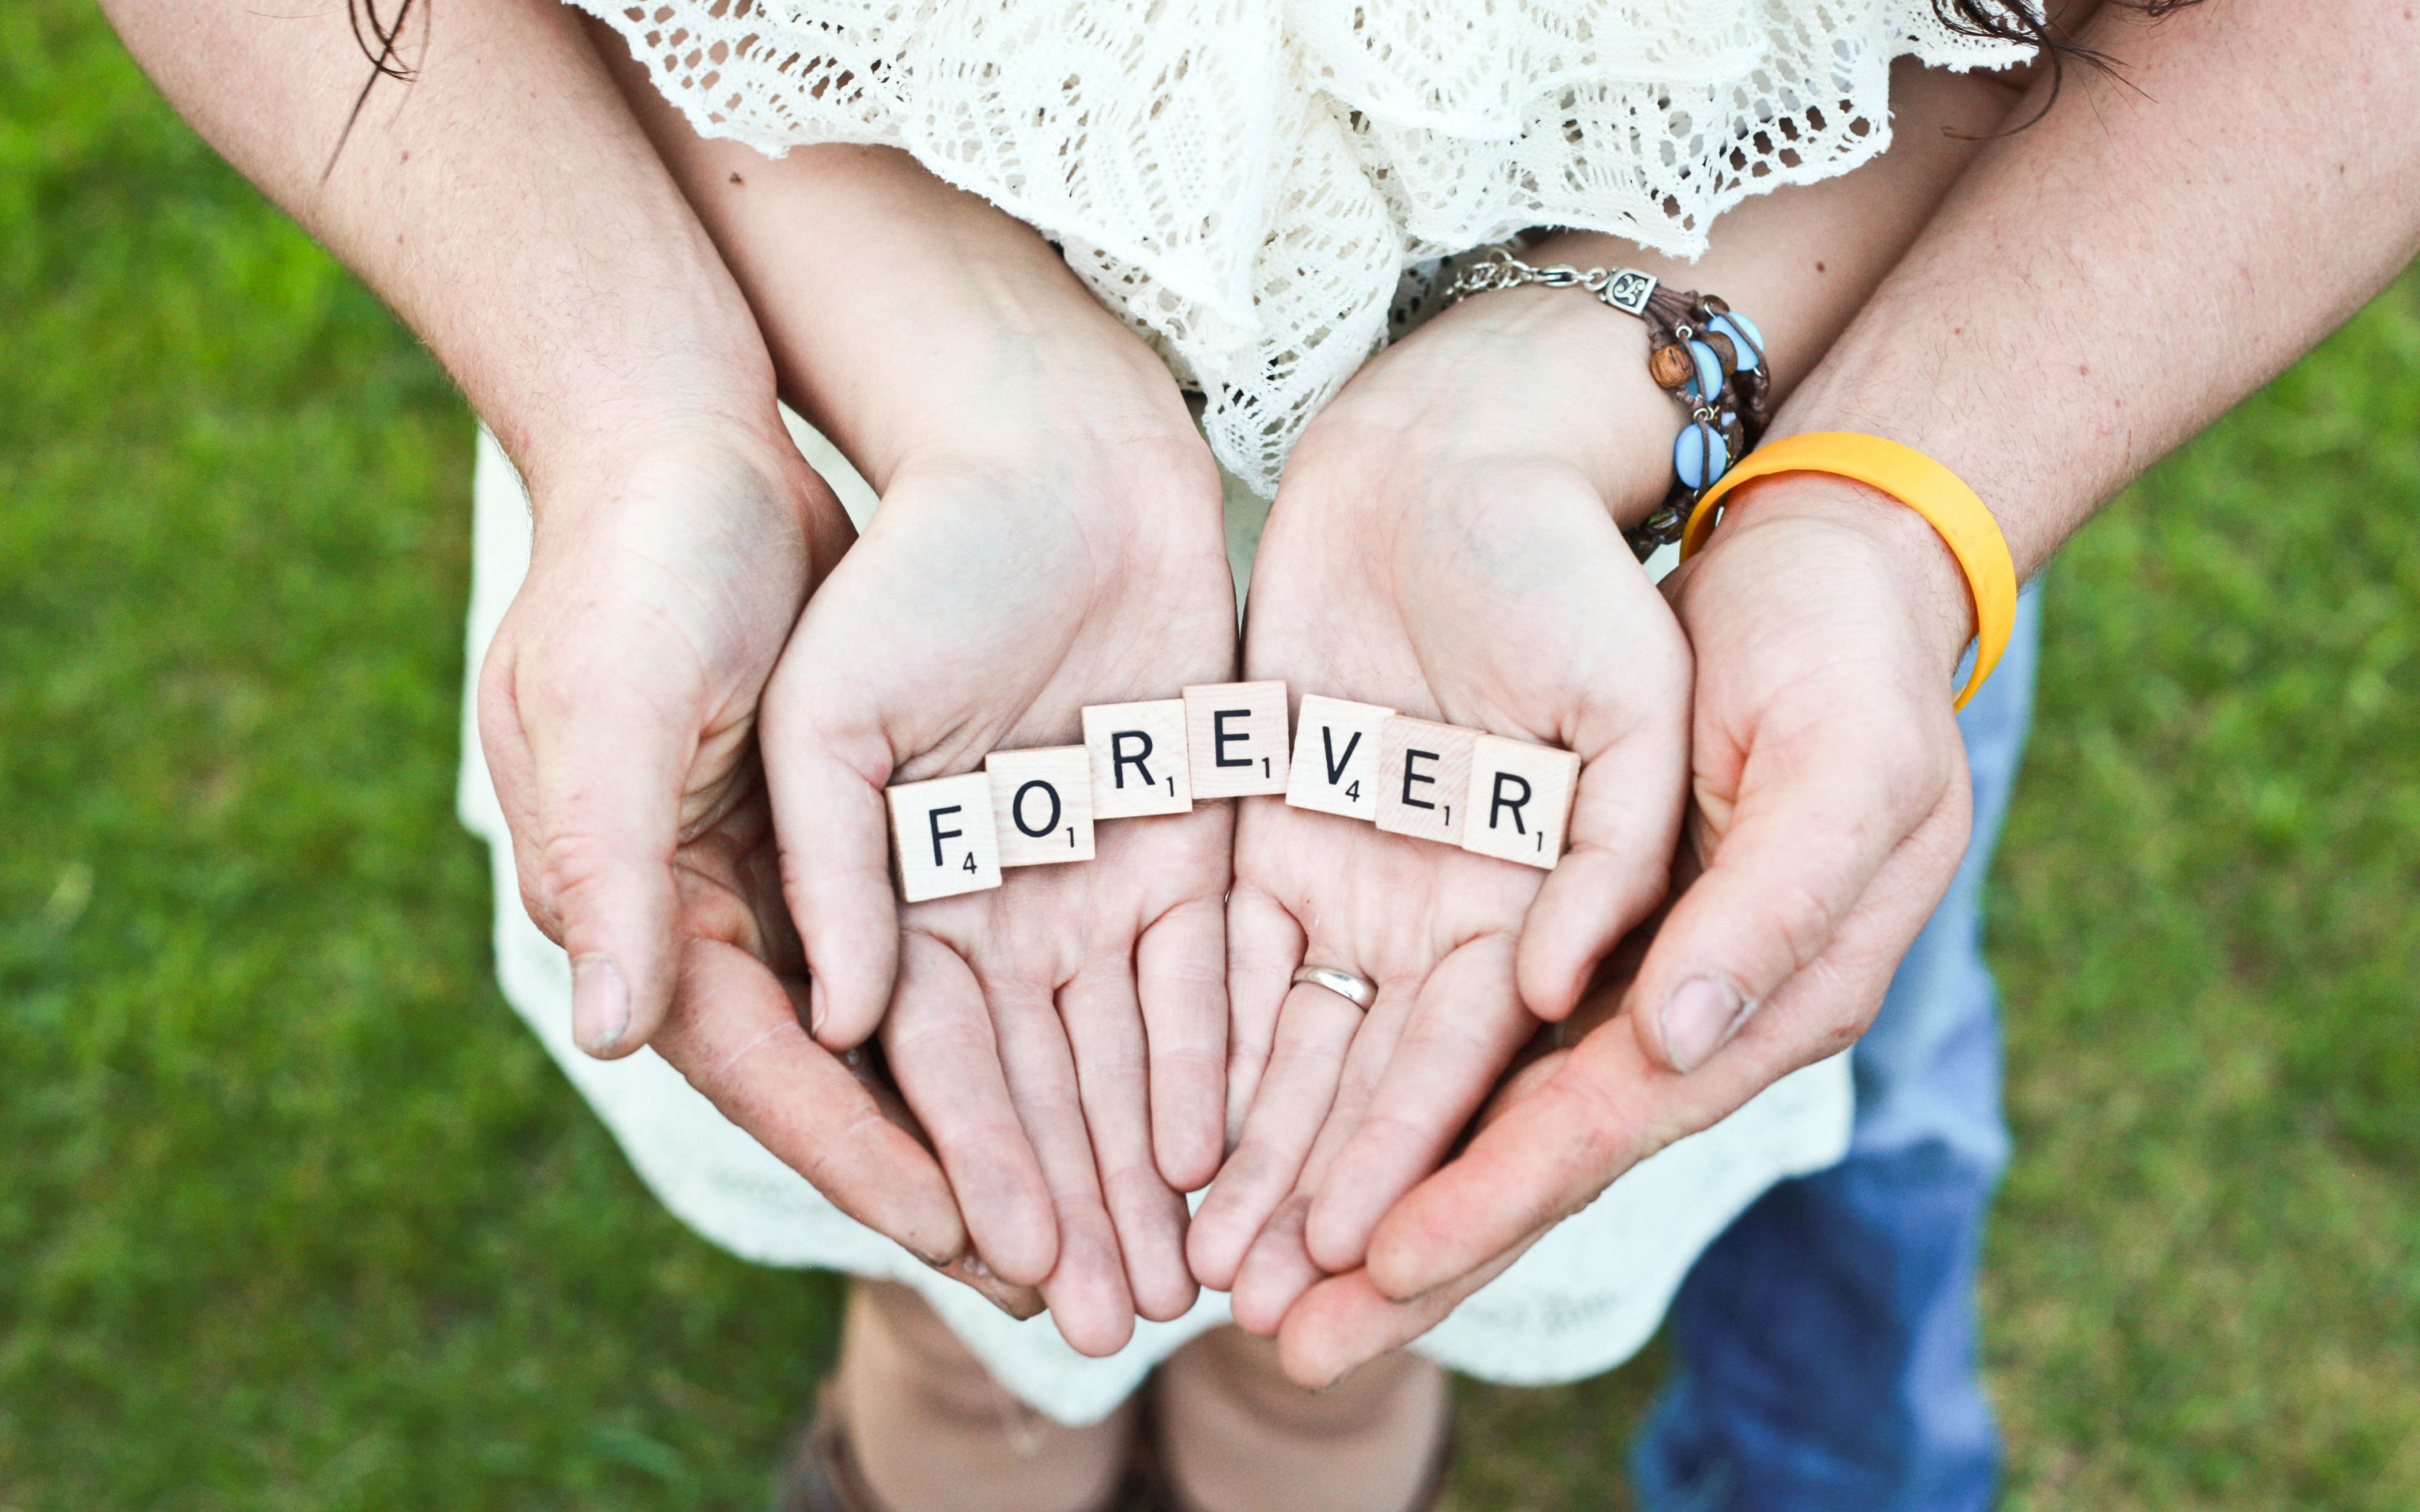 Forever message in their hands | 2880x1800 wallpaper